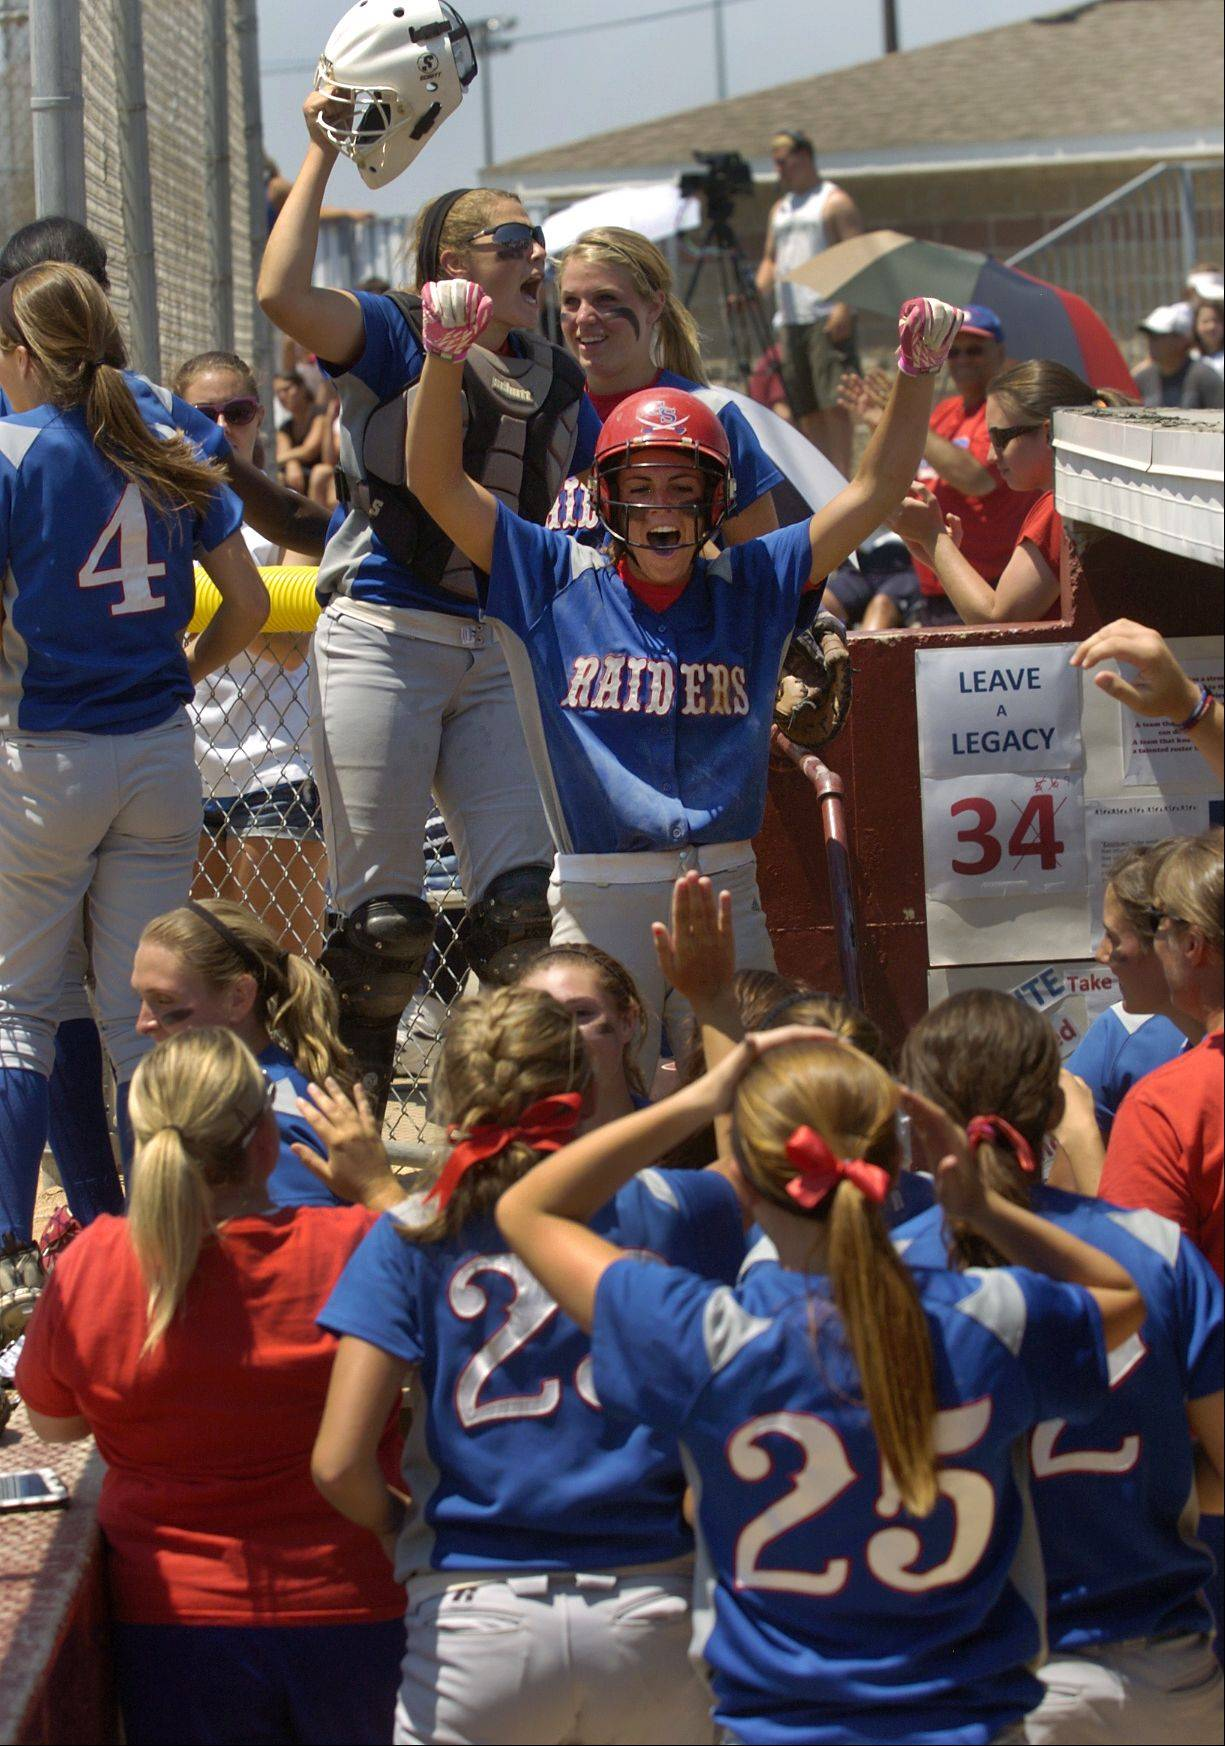 Glenbard South celebrates after putting 2 runs on the board in the 4th inning of the Class 3A state softball final.